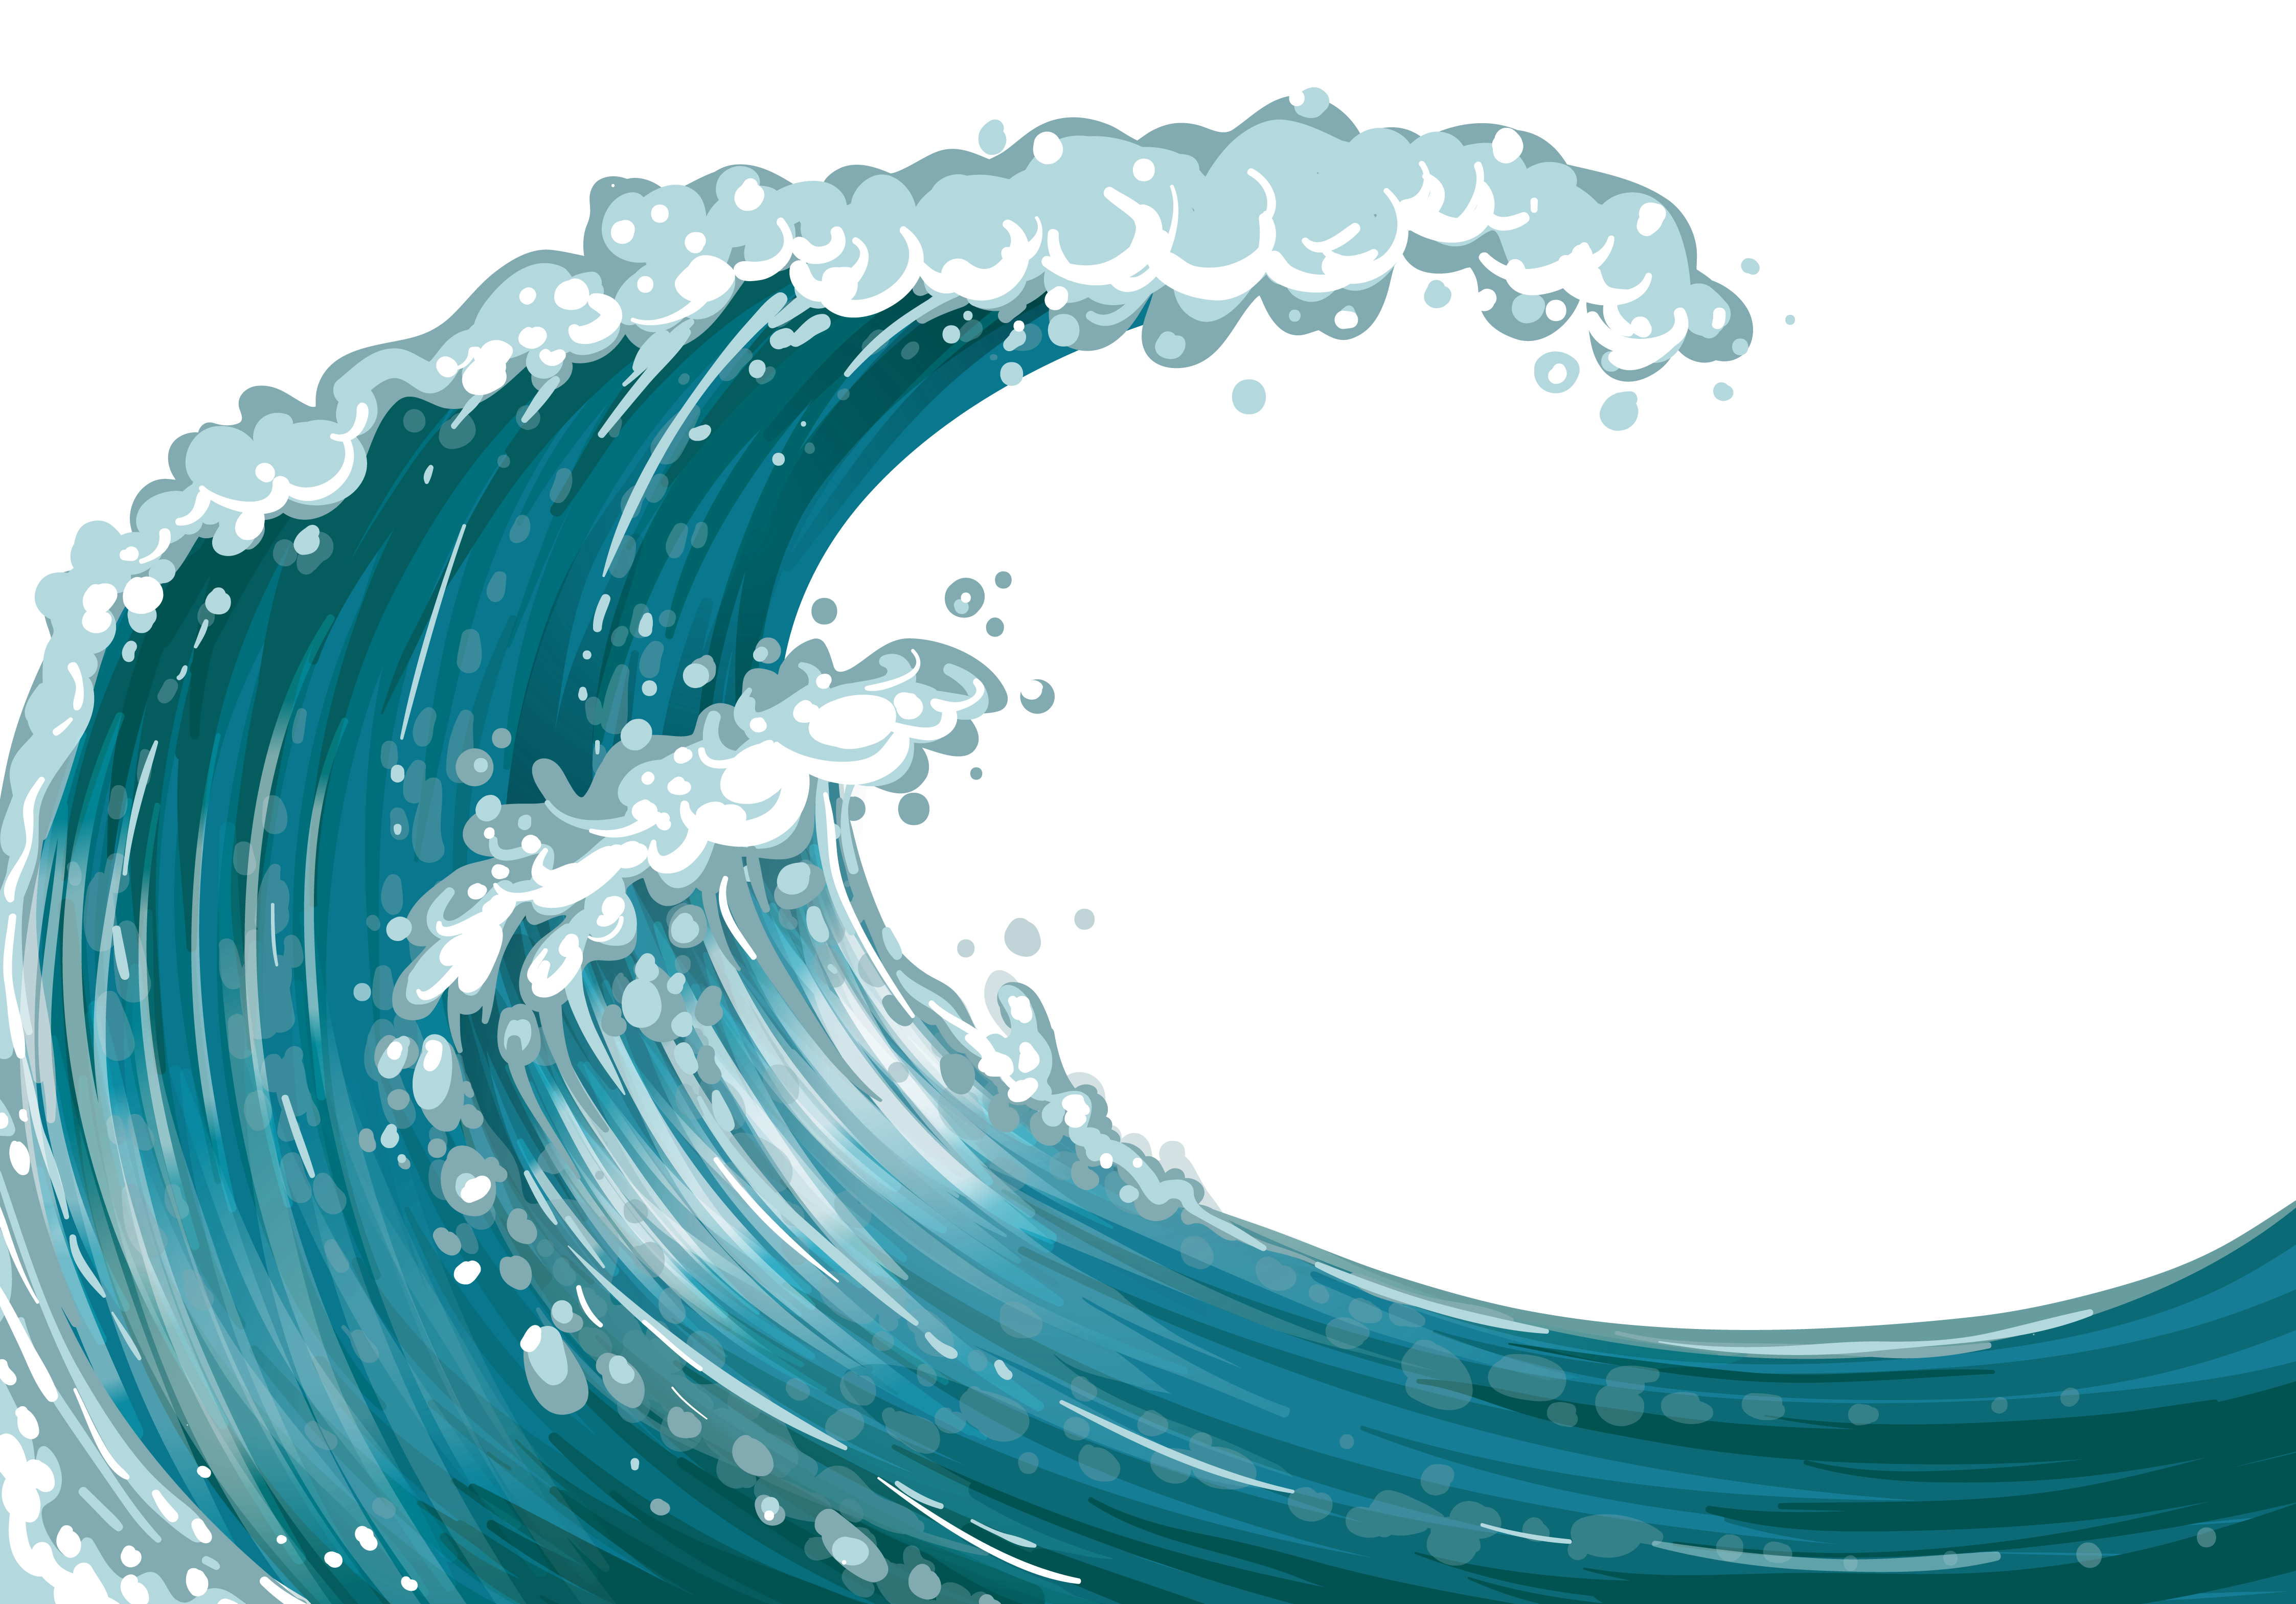 Waves sea wave clipart